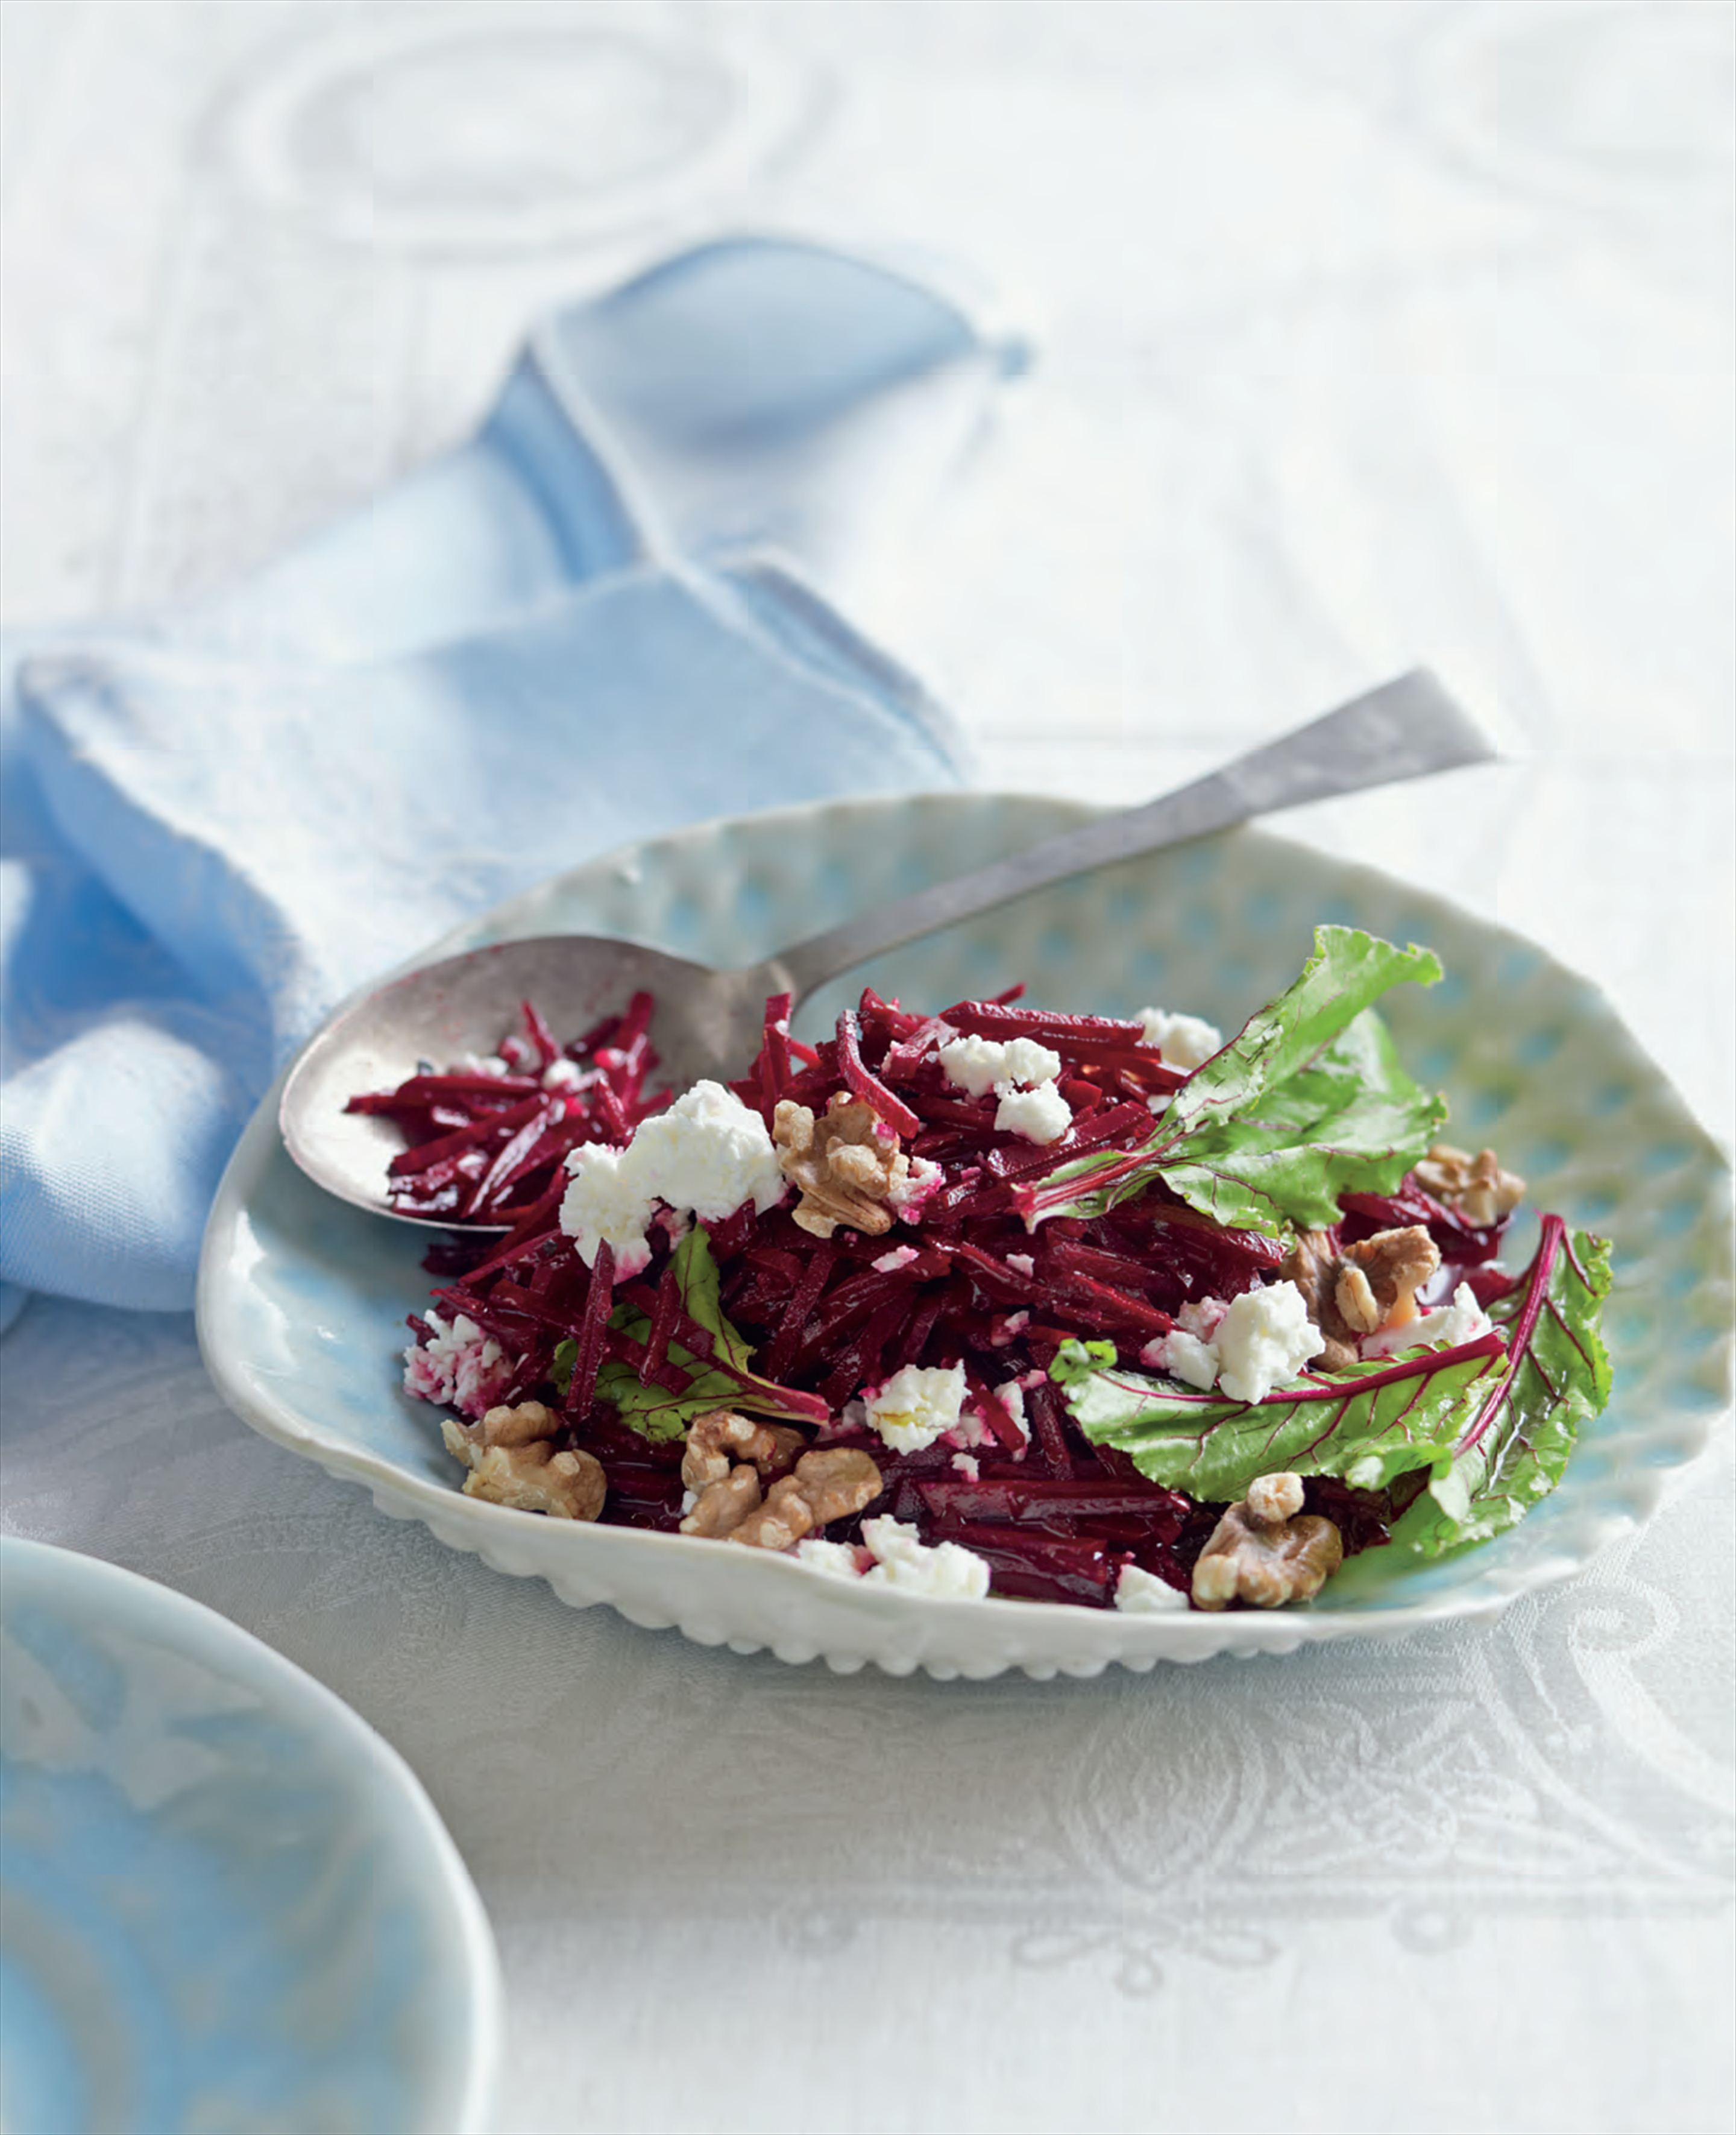 Salad of beetroot, feta and walnuts